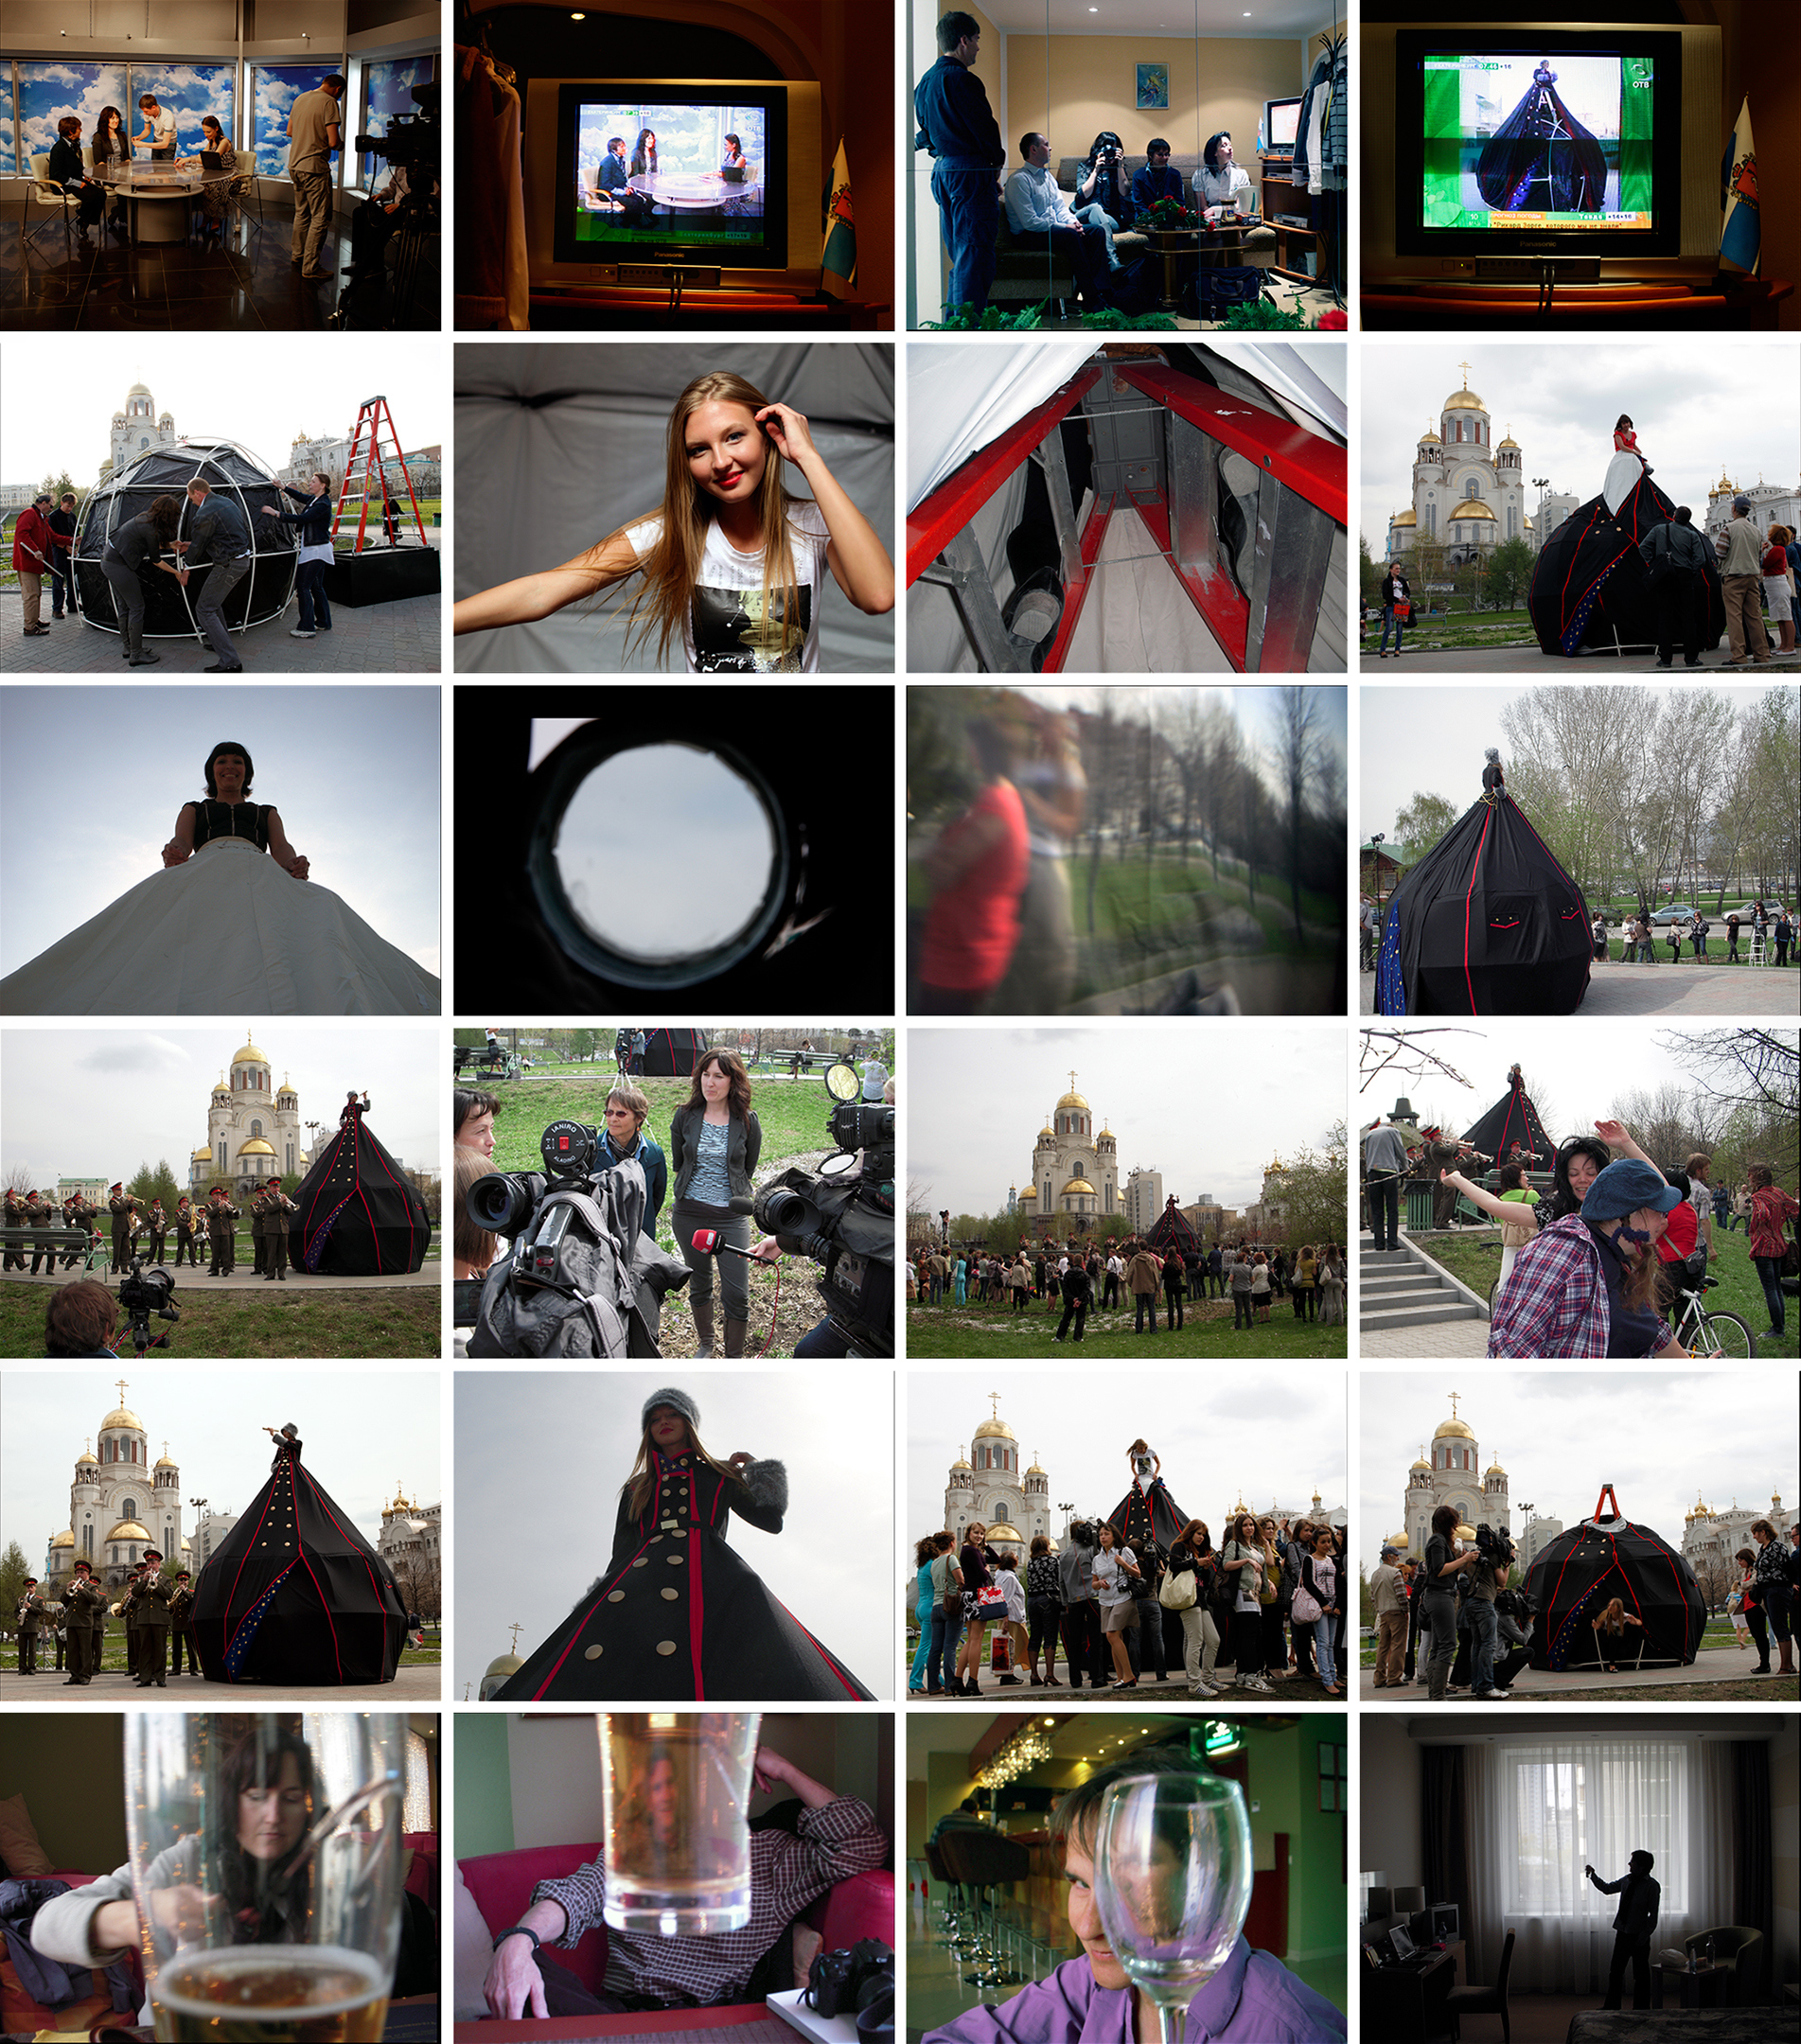 MS. RUSSIA: CAMERA OBSCURA DRESS TENT INSTALLATION  Church on the Blood, Yekaterinburg, Russia